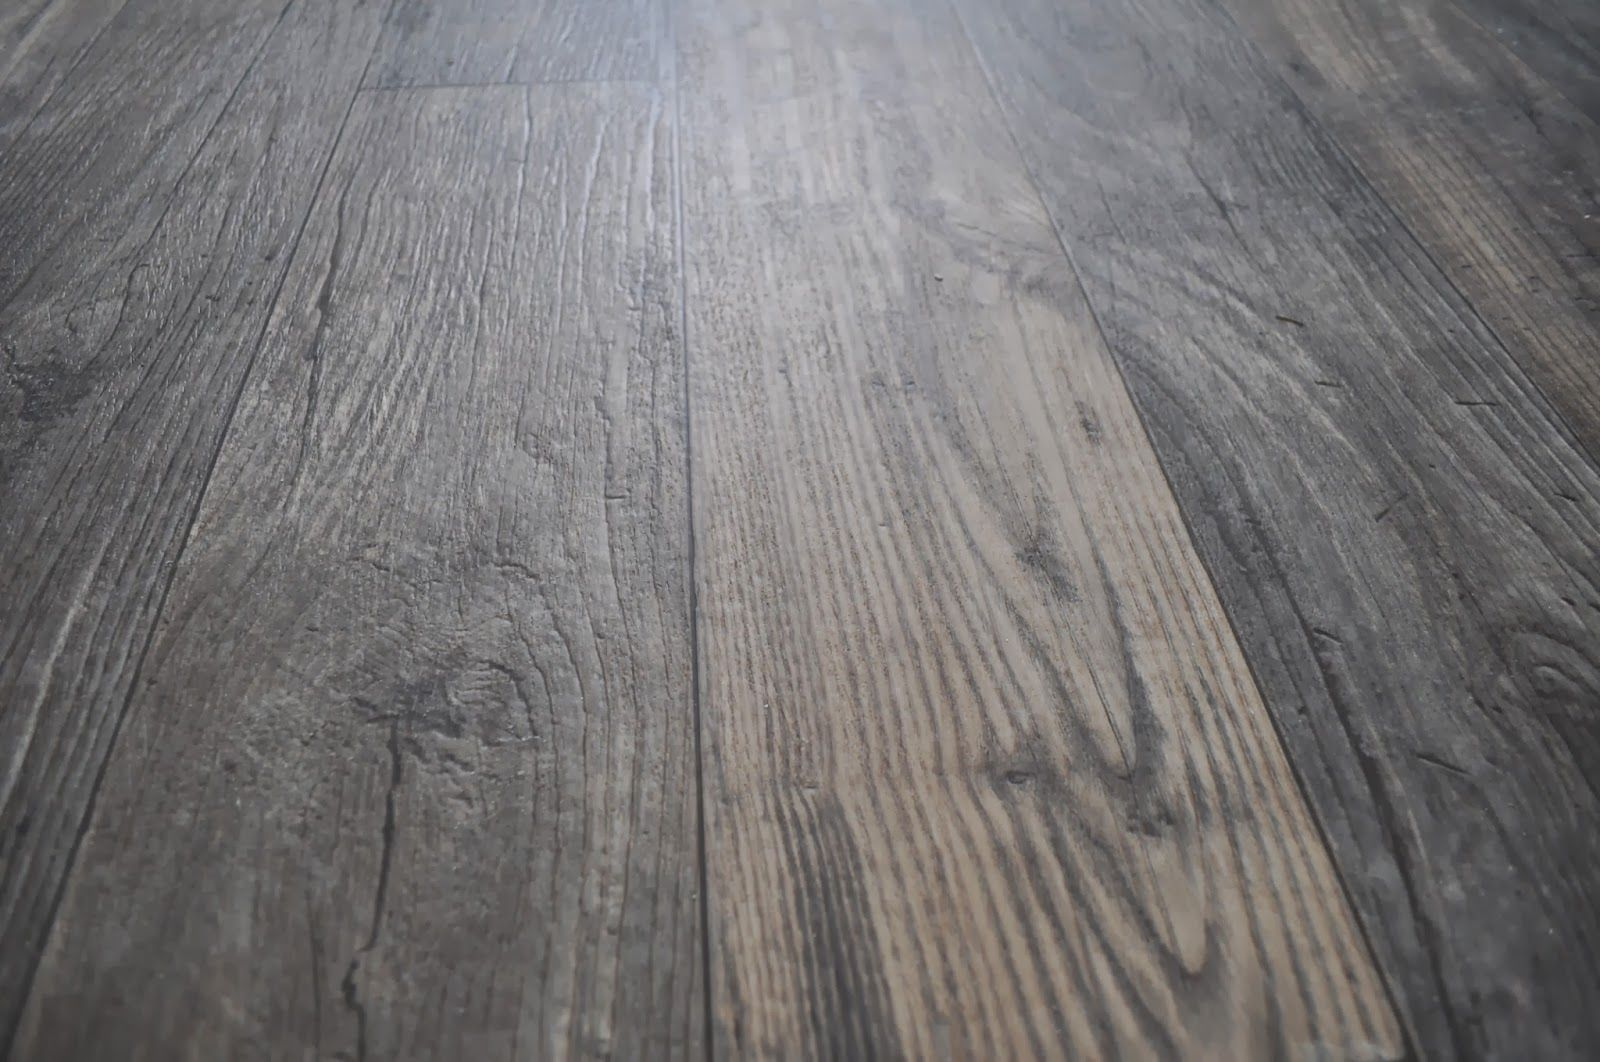 Many who tread on this floor initially think that it is for Mannington vinyl flooring